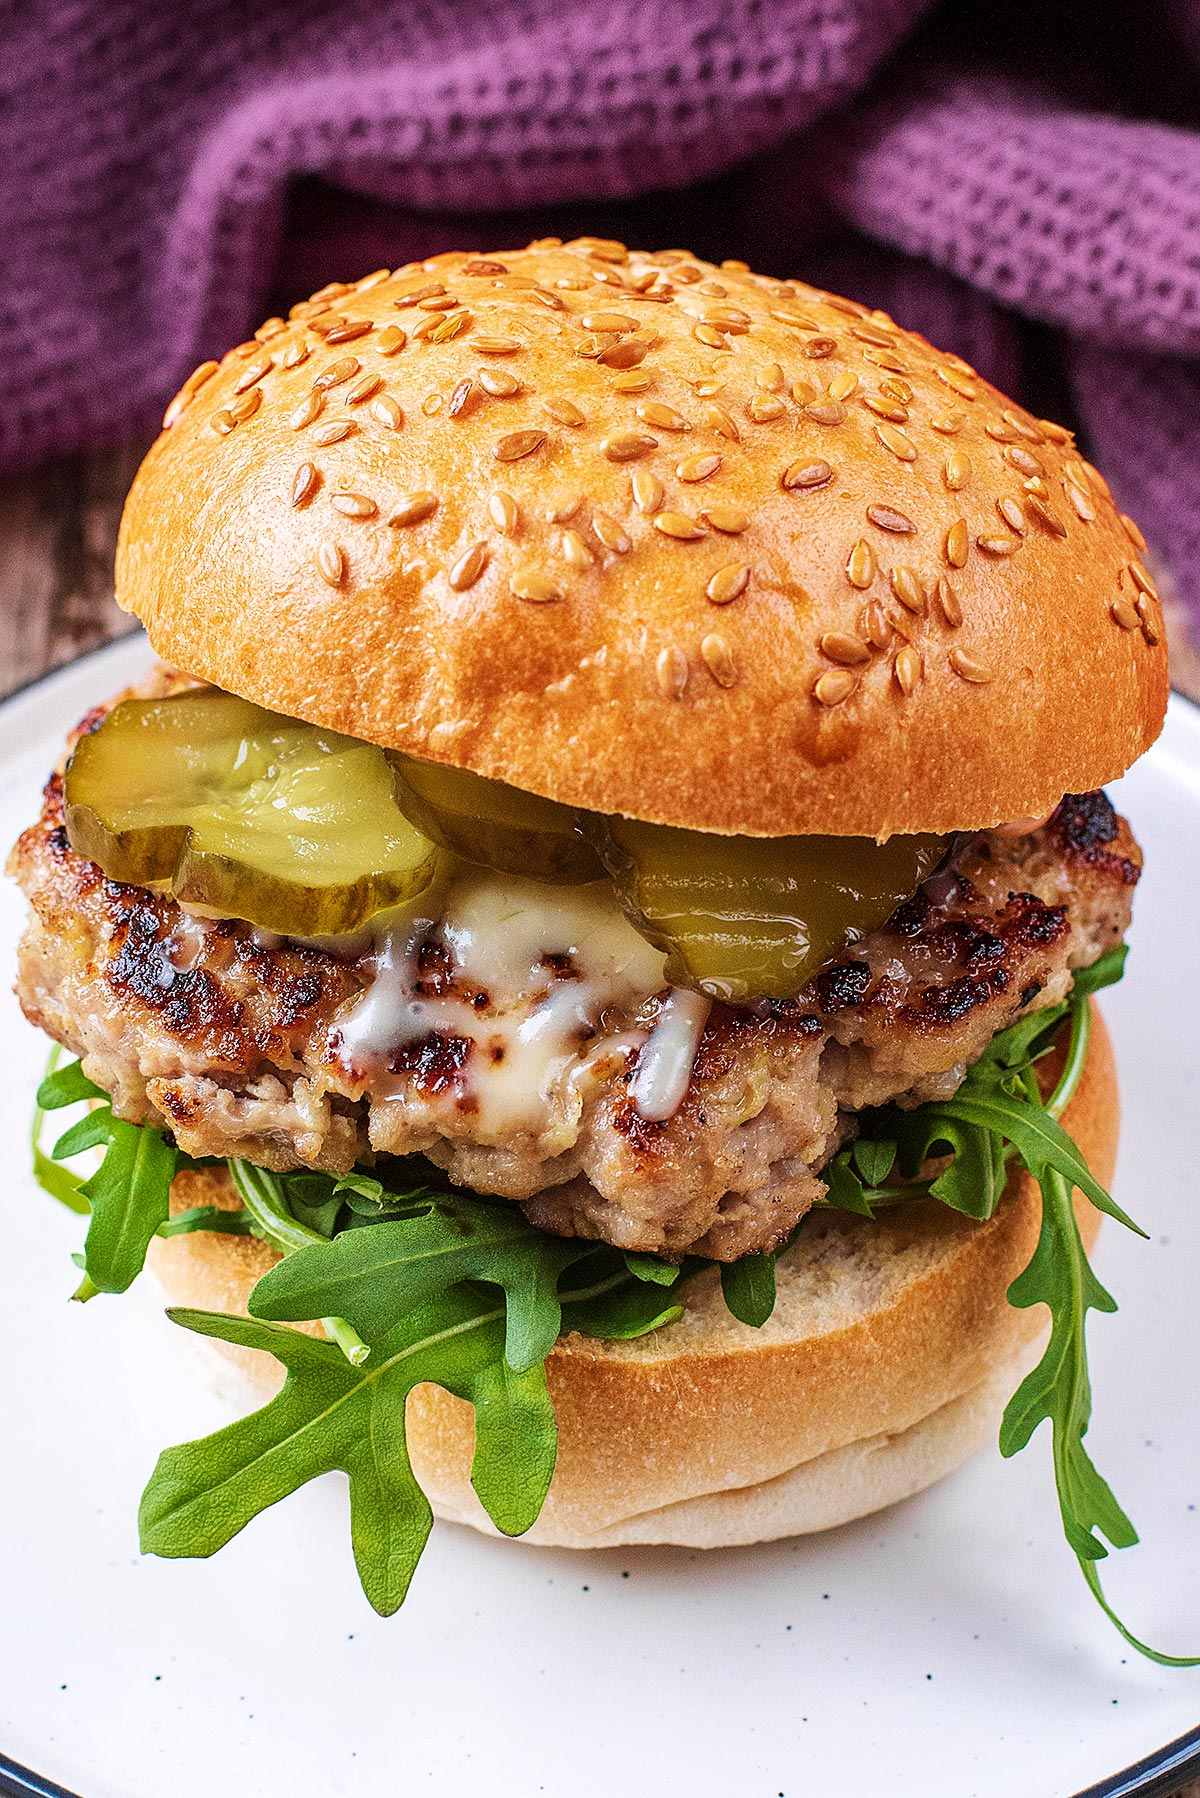 A burger in a sesame seed bun with lettuce leaves, pickles and melted cheese